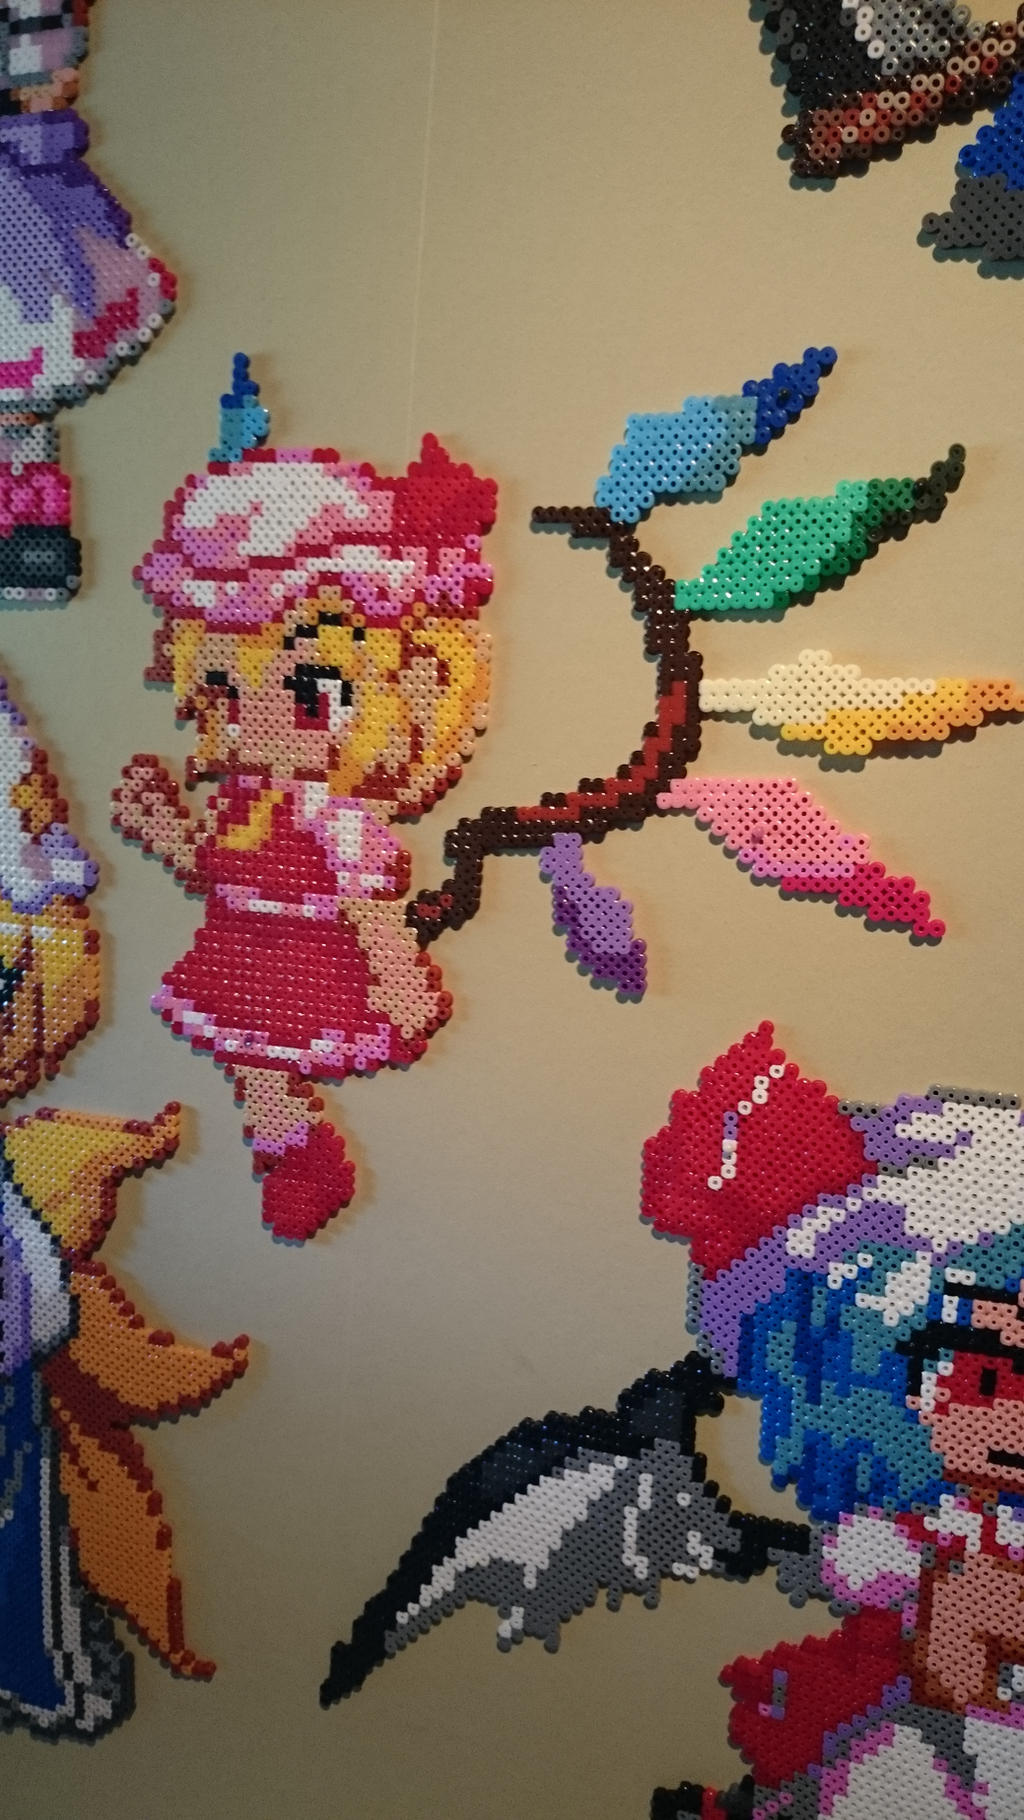 Touhou Character 1 - Scarlet Flandre by MagicPearls